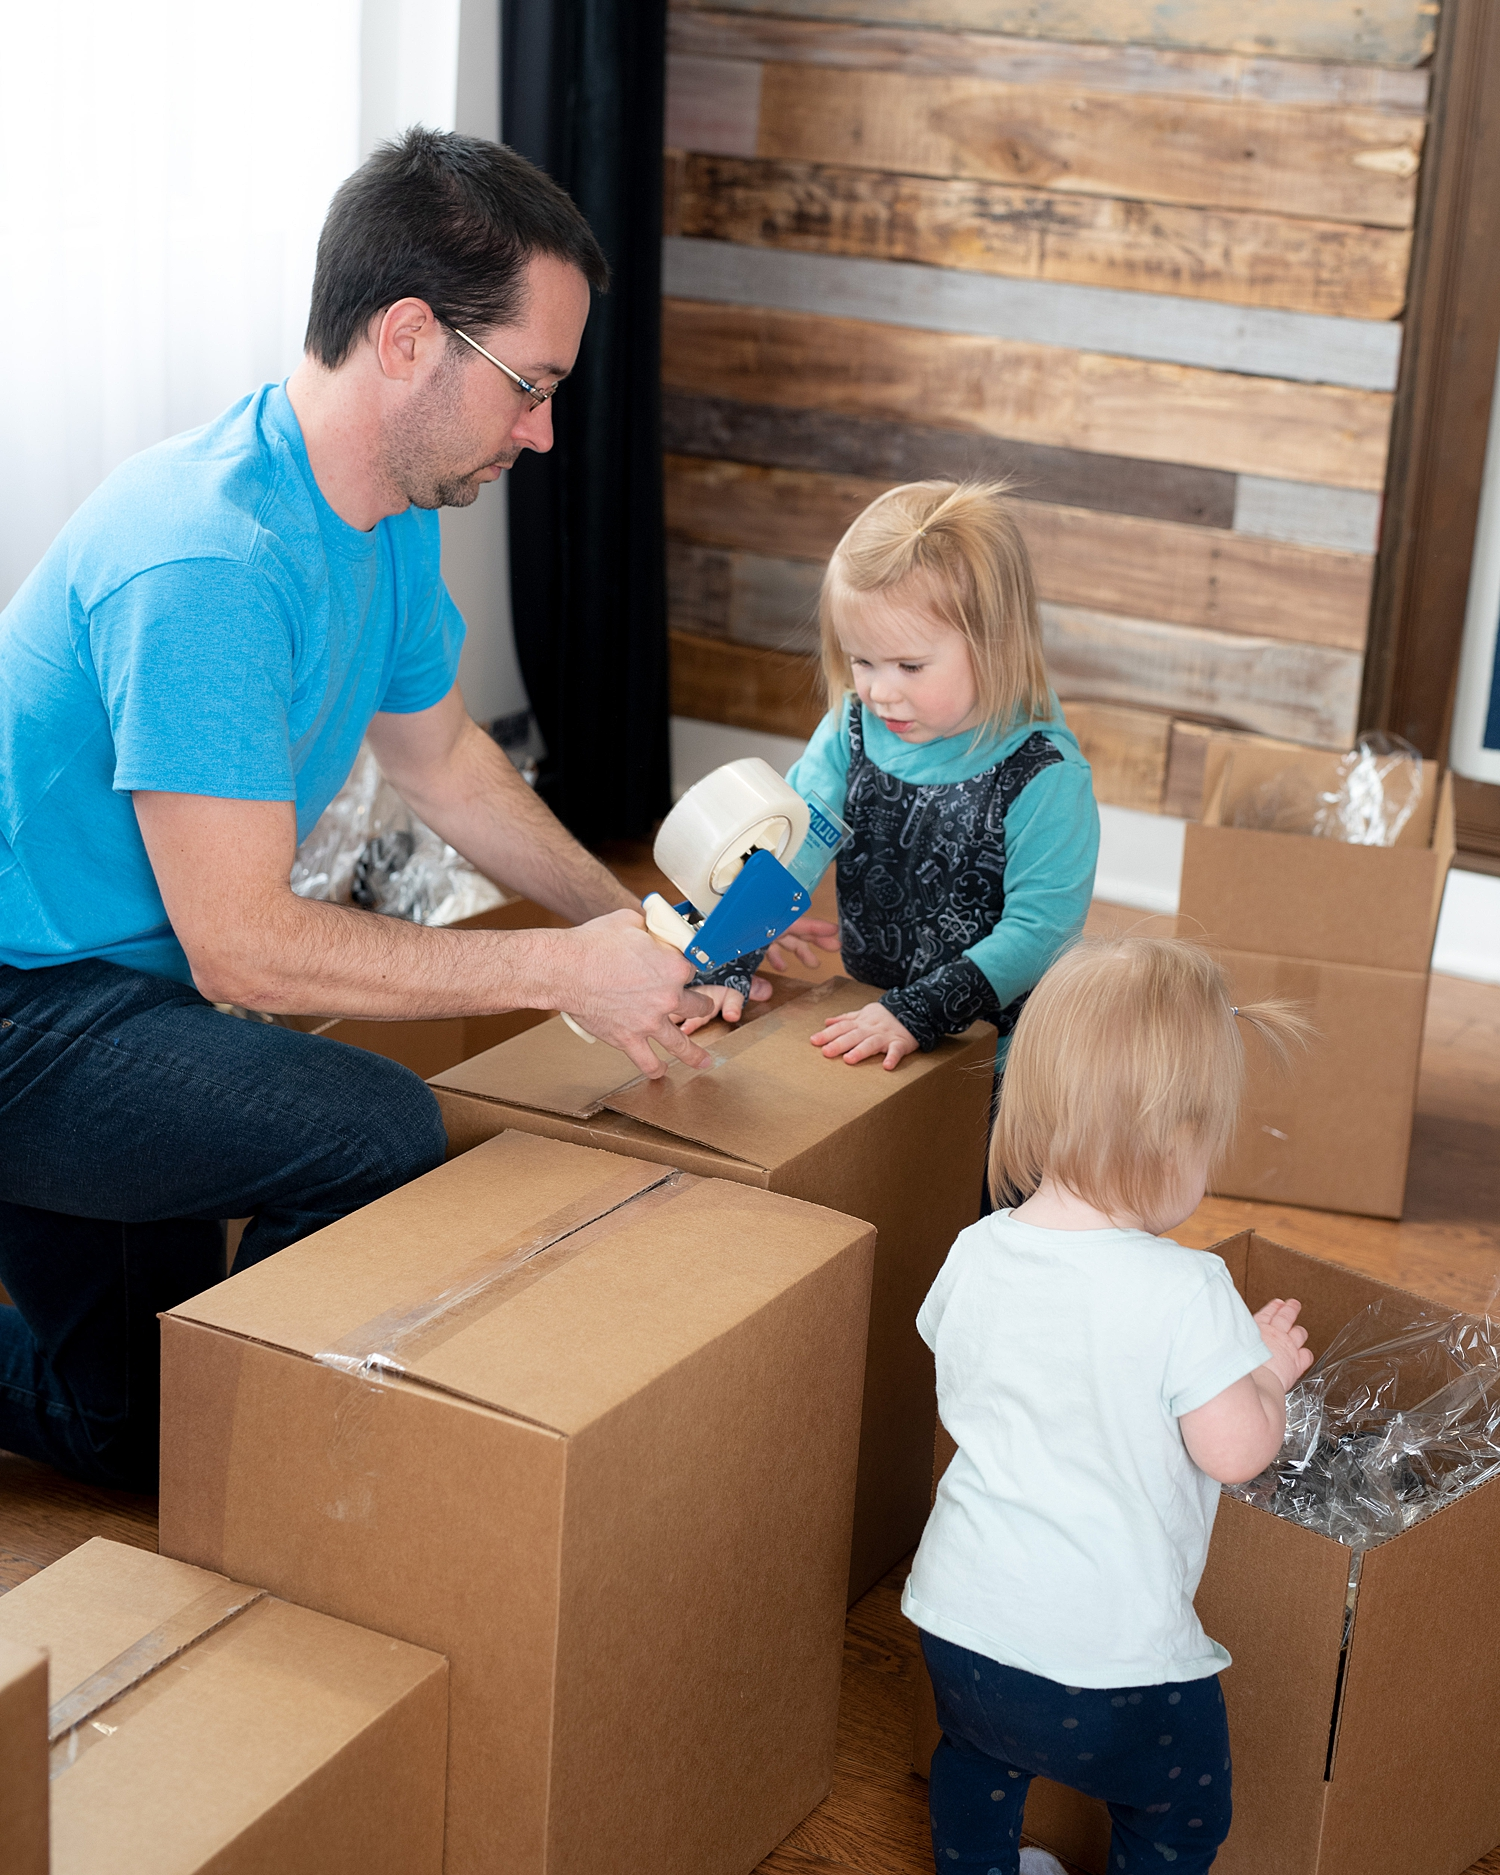 Family business packing boxes